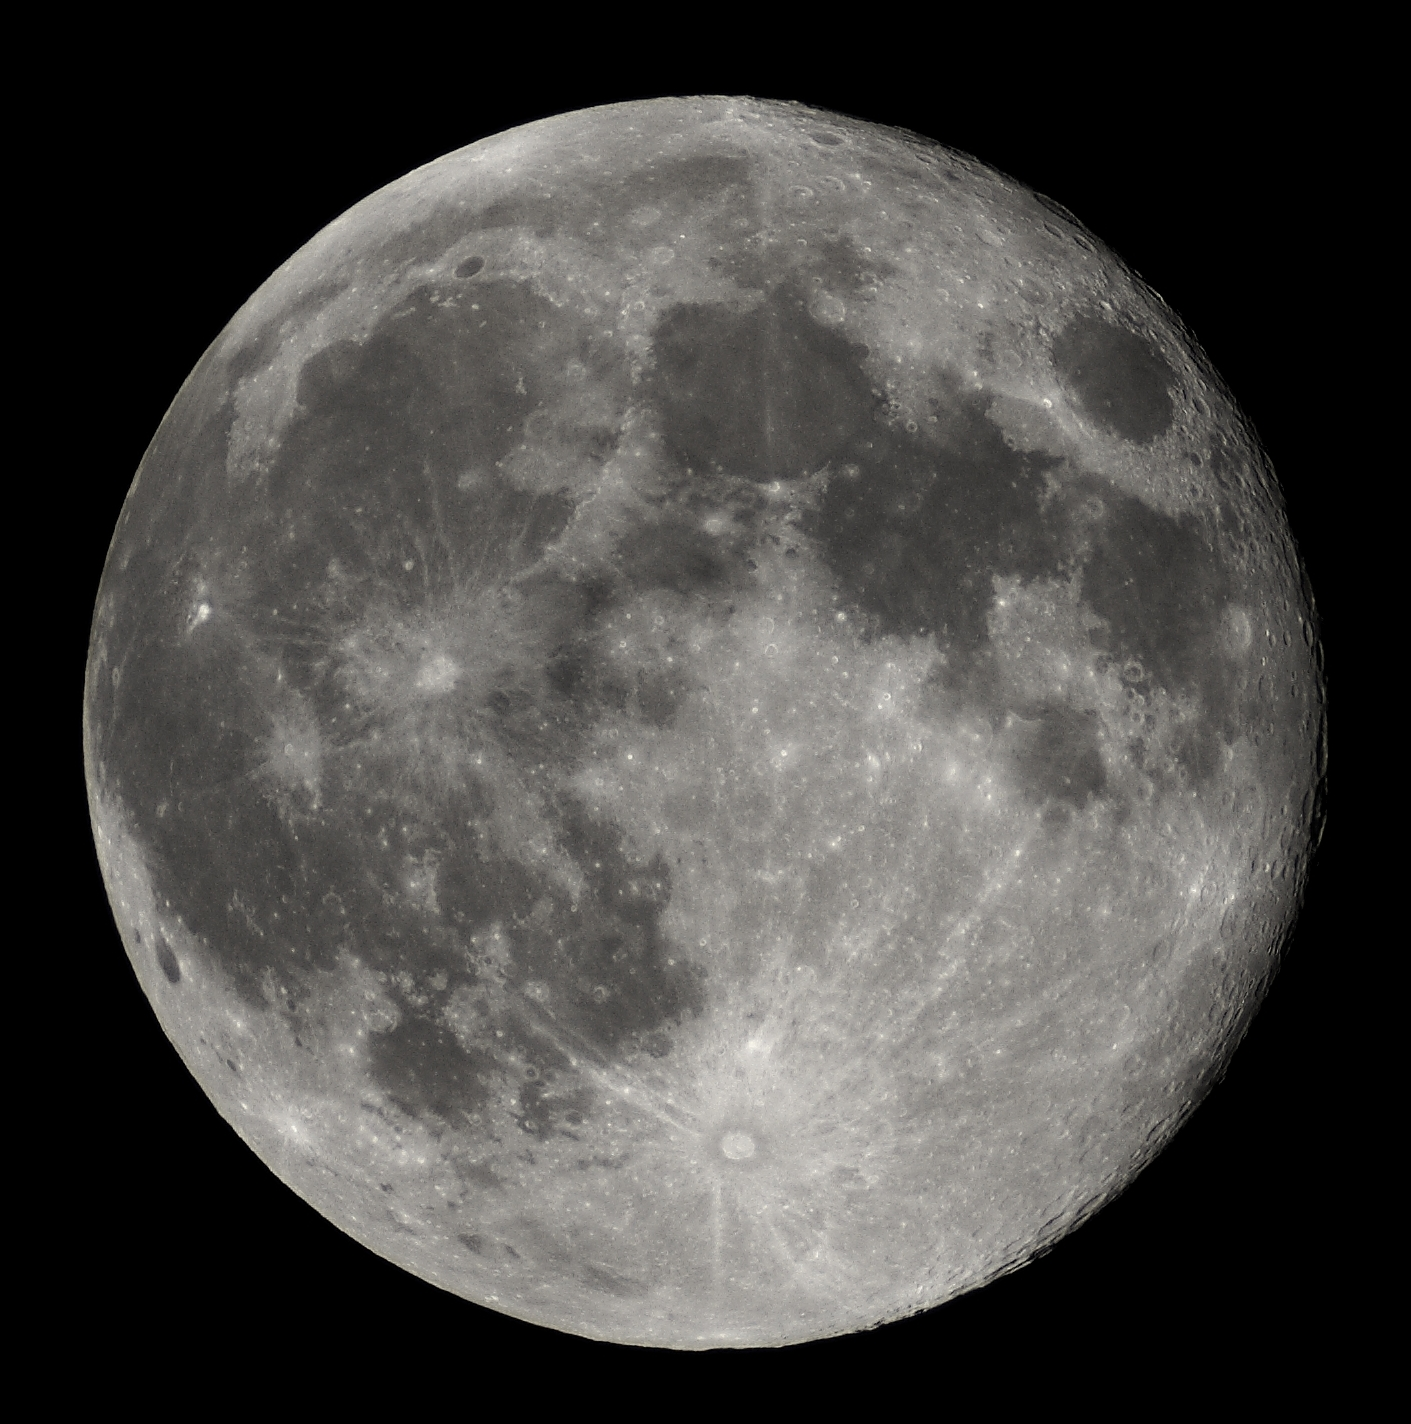 File:Full Moon Luc Viatour.jpg - Wikipedia, the free encyclopediamoon